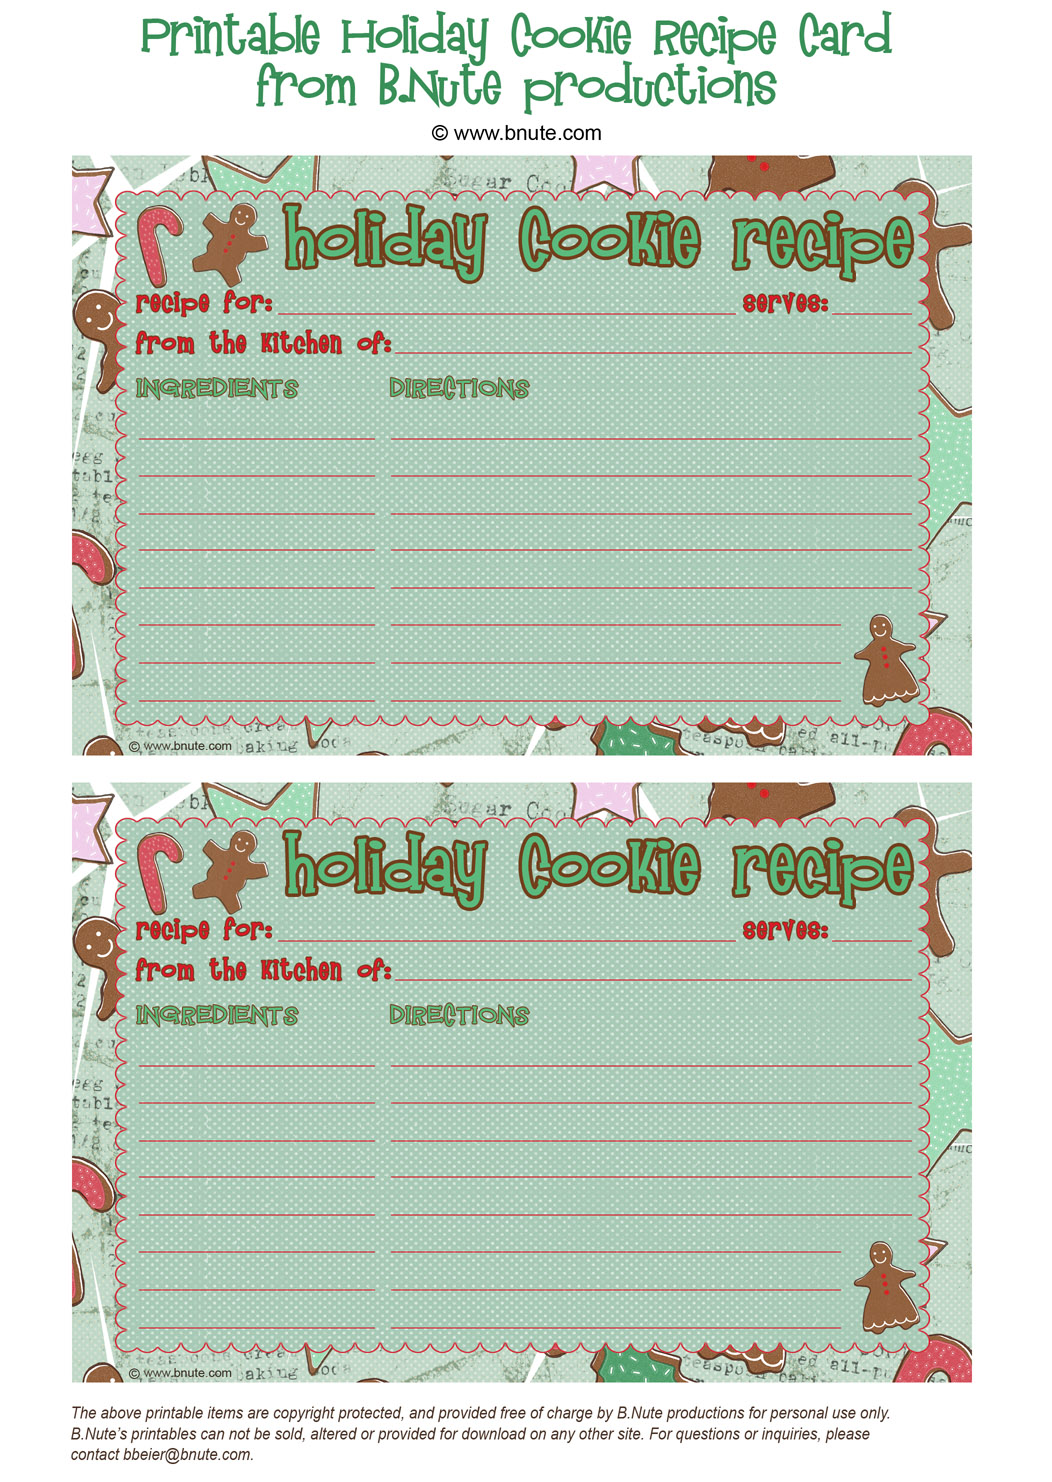 Free Printable Holiday Cookie Recipe Card By BNute Productions